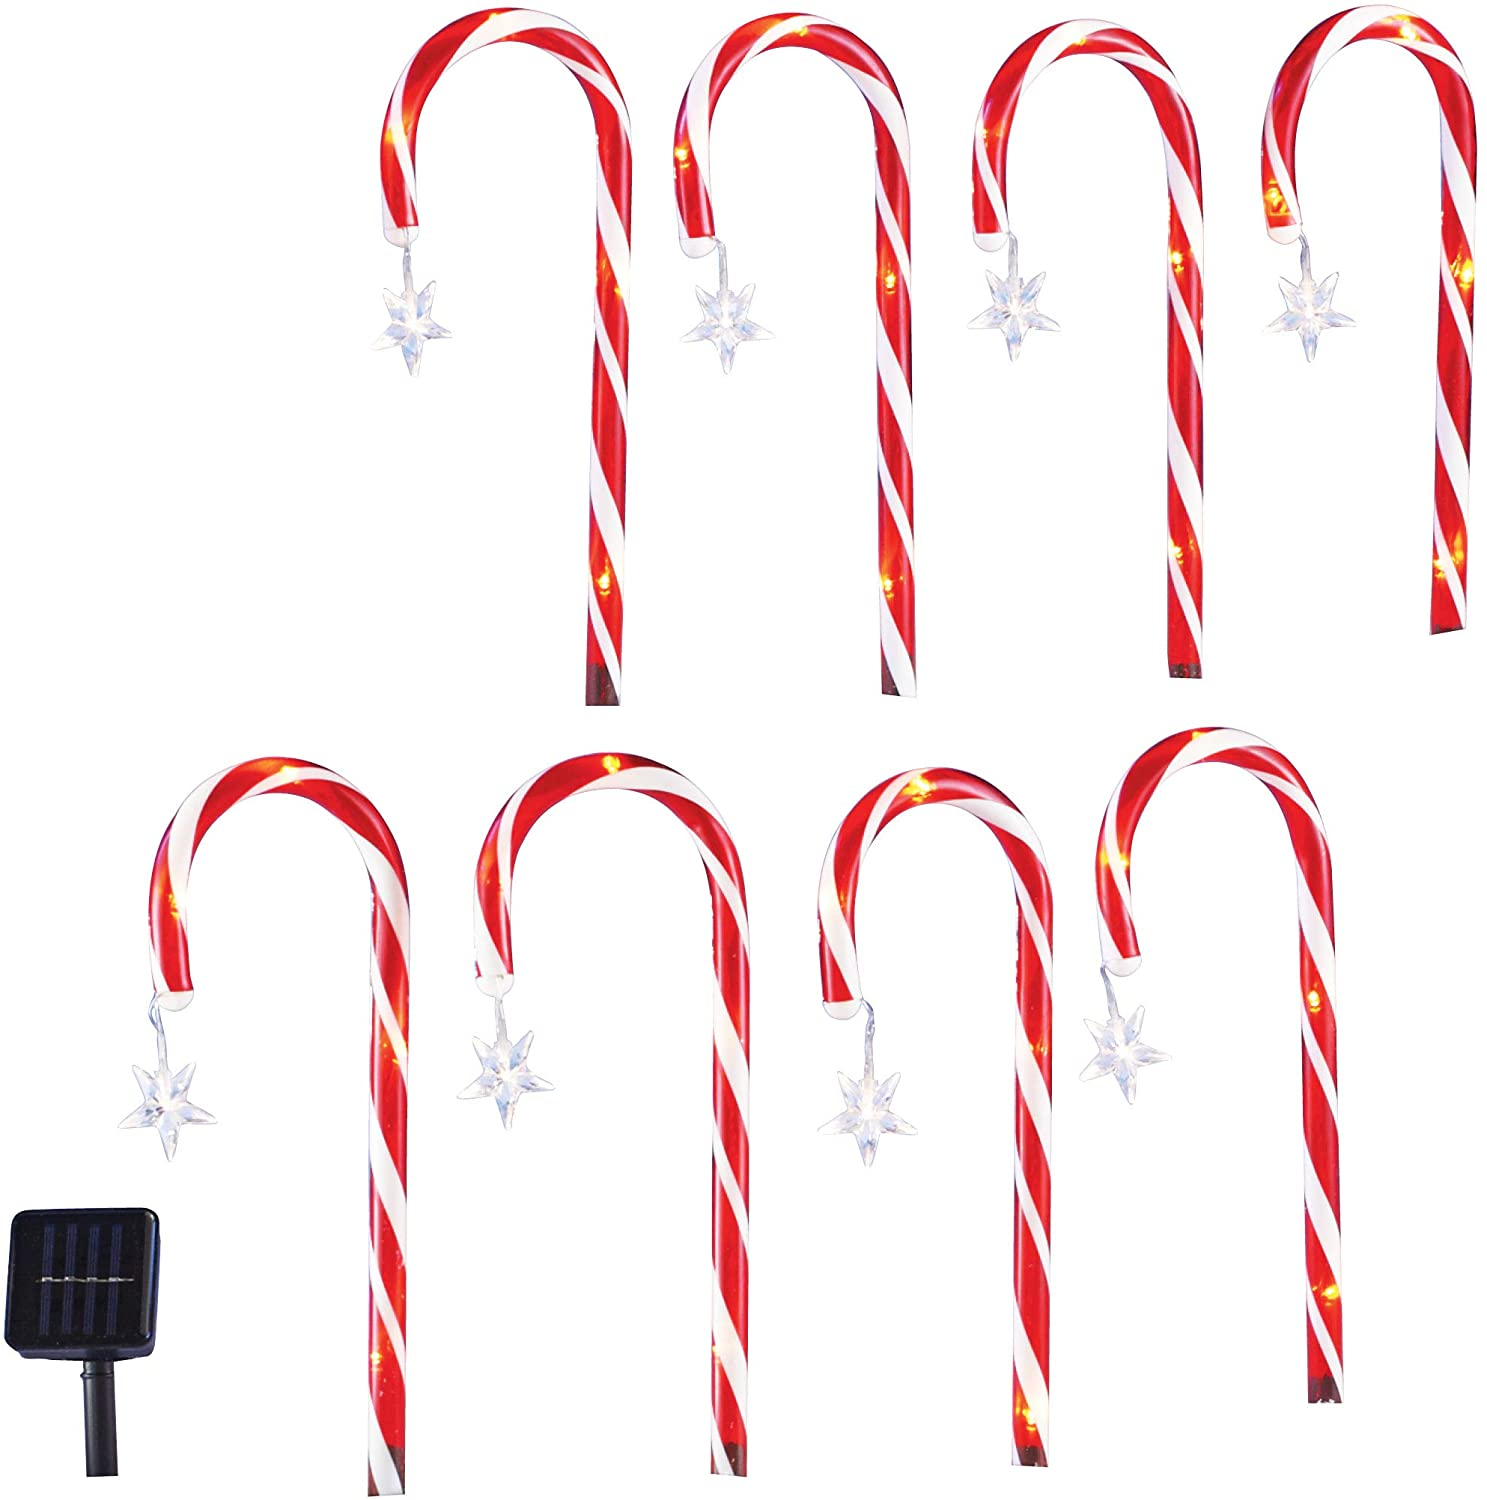 Solar Candy Cane Pathlight Stakes - Set of 8